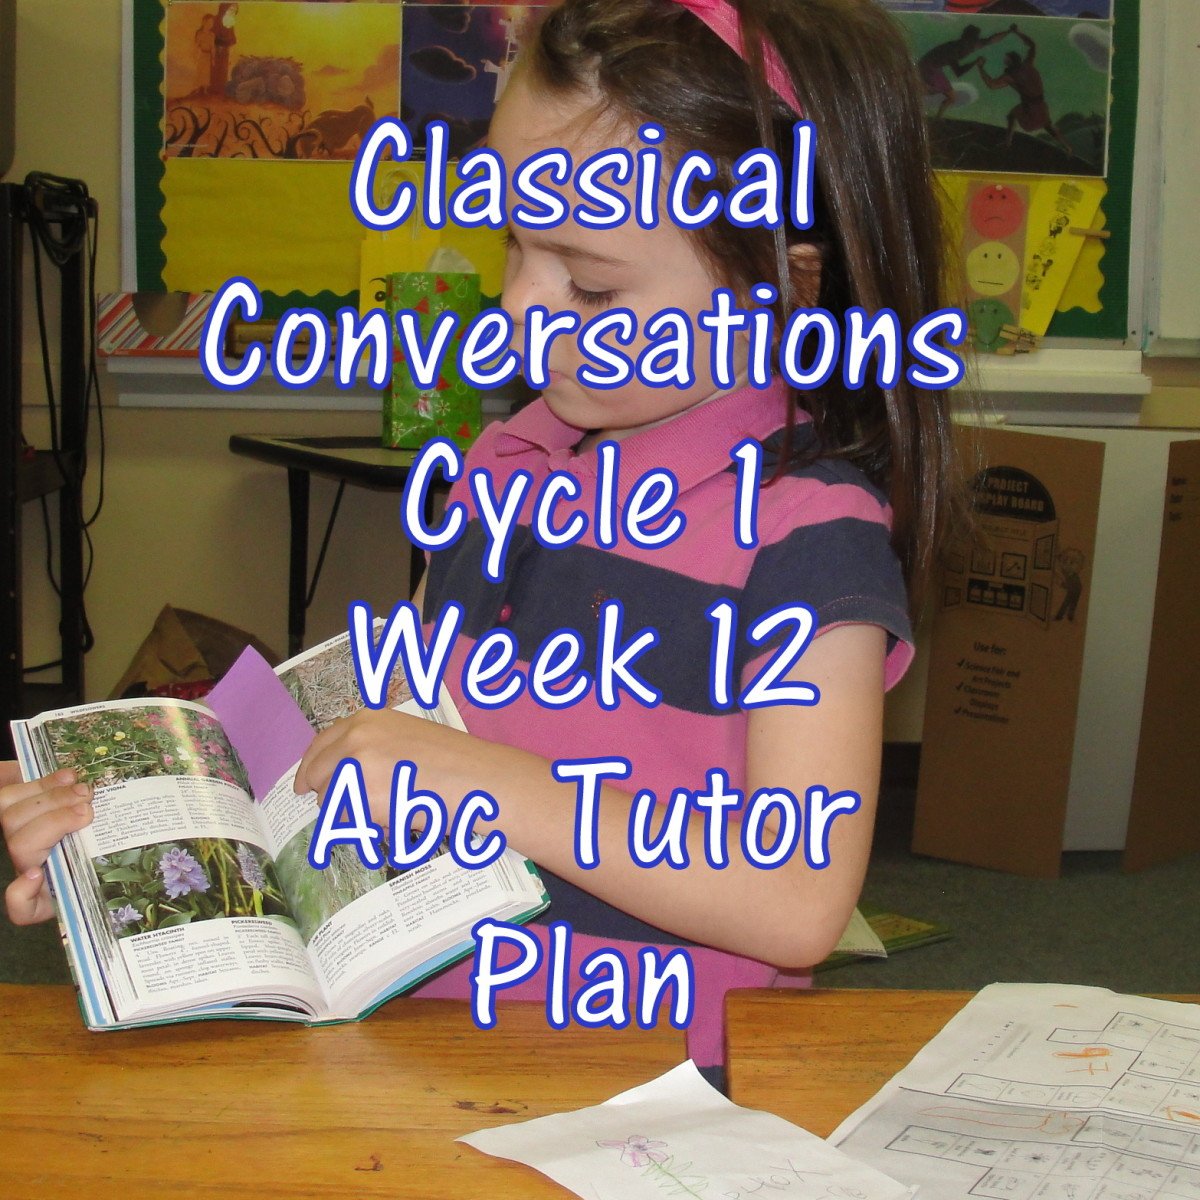 Classical Conversations Cycle 1 Week 12 Abc Tutor Plan